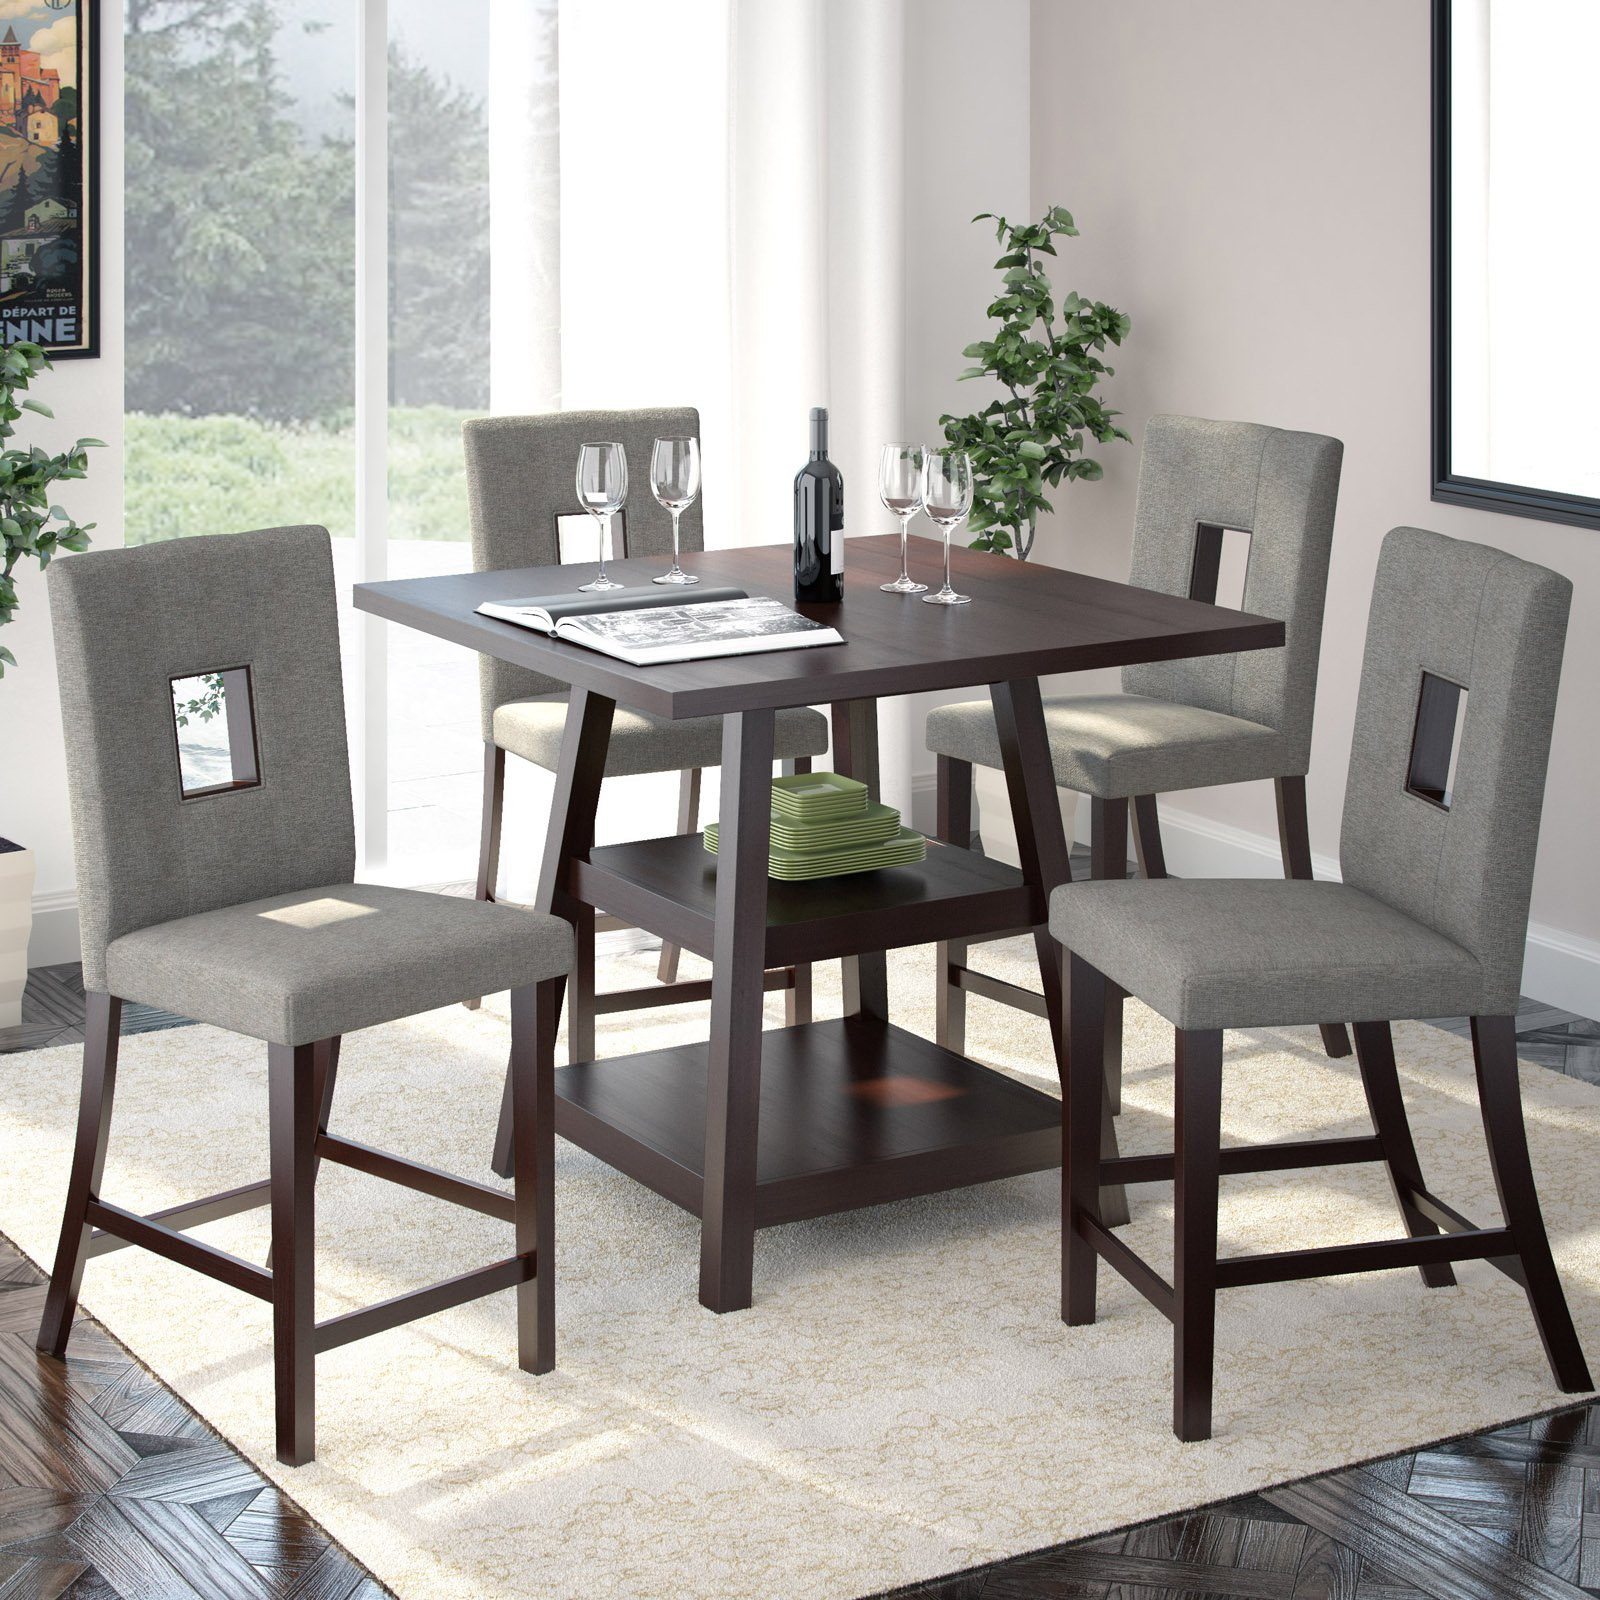 "CorLiving Bistro 5pc 36"" Counter Height Rich Cappuccino Dining Set, Pewter Grey"